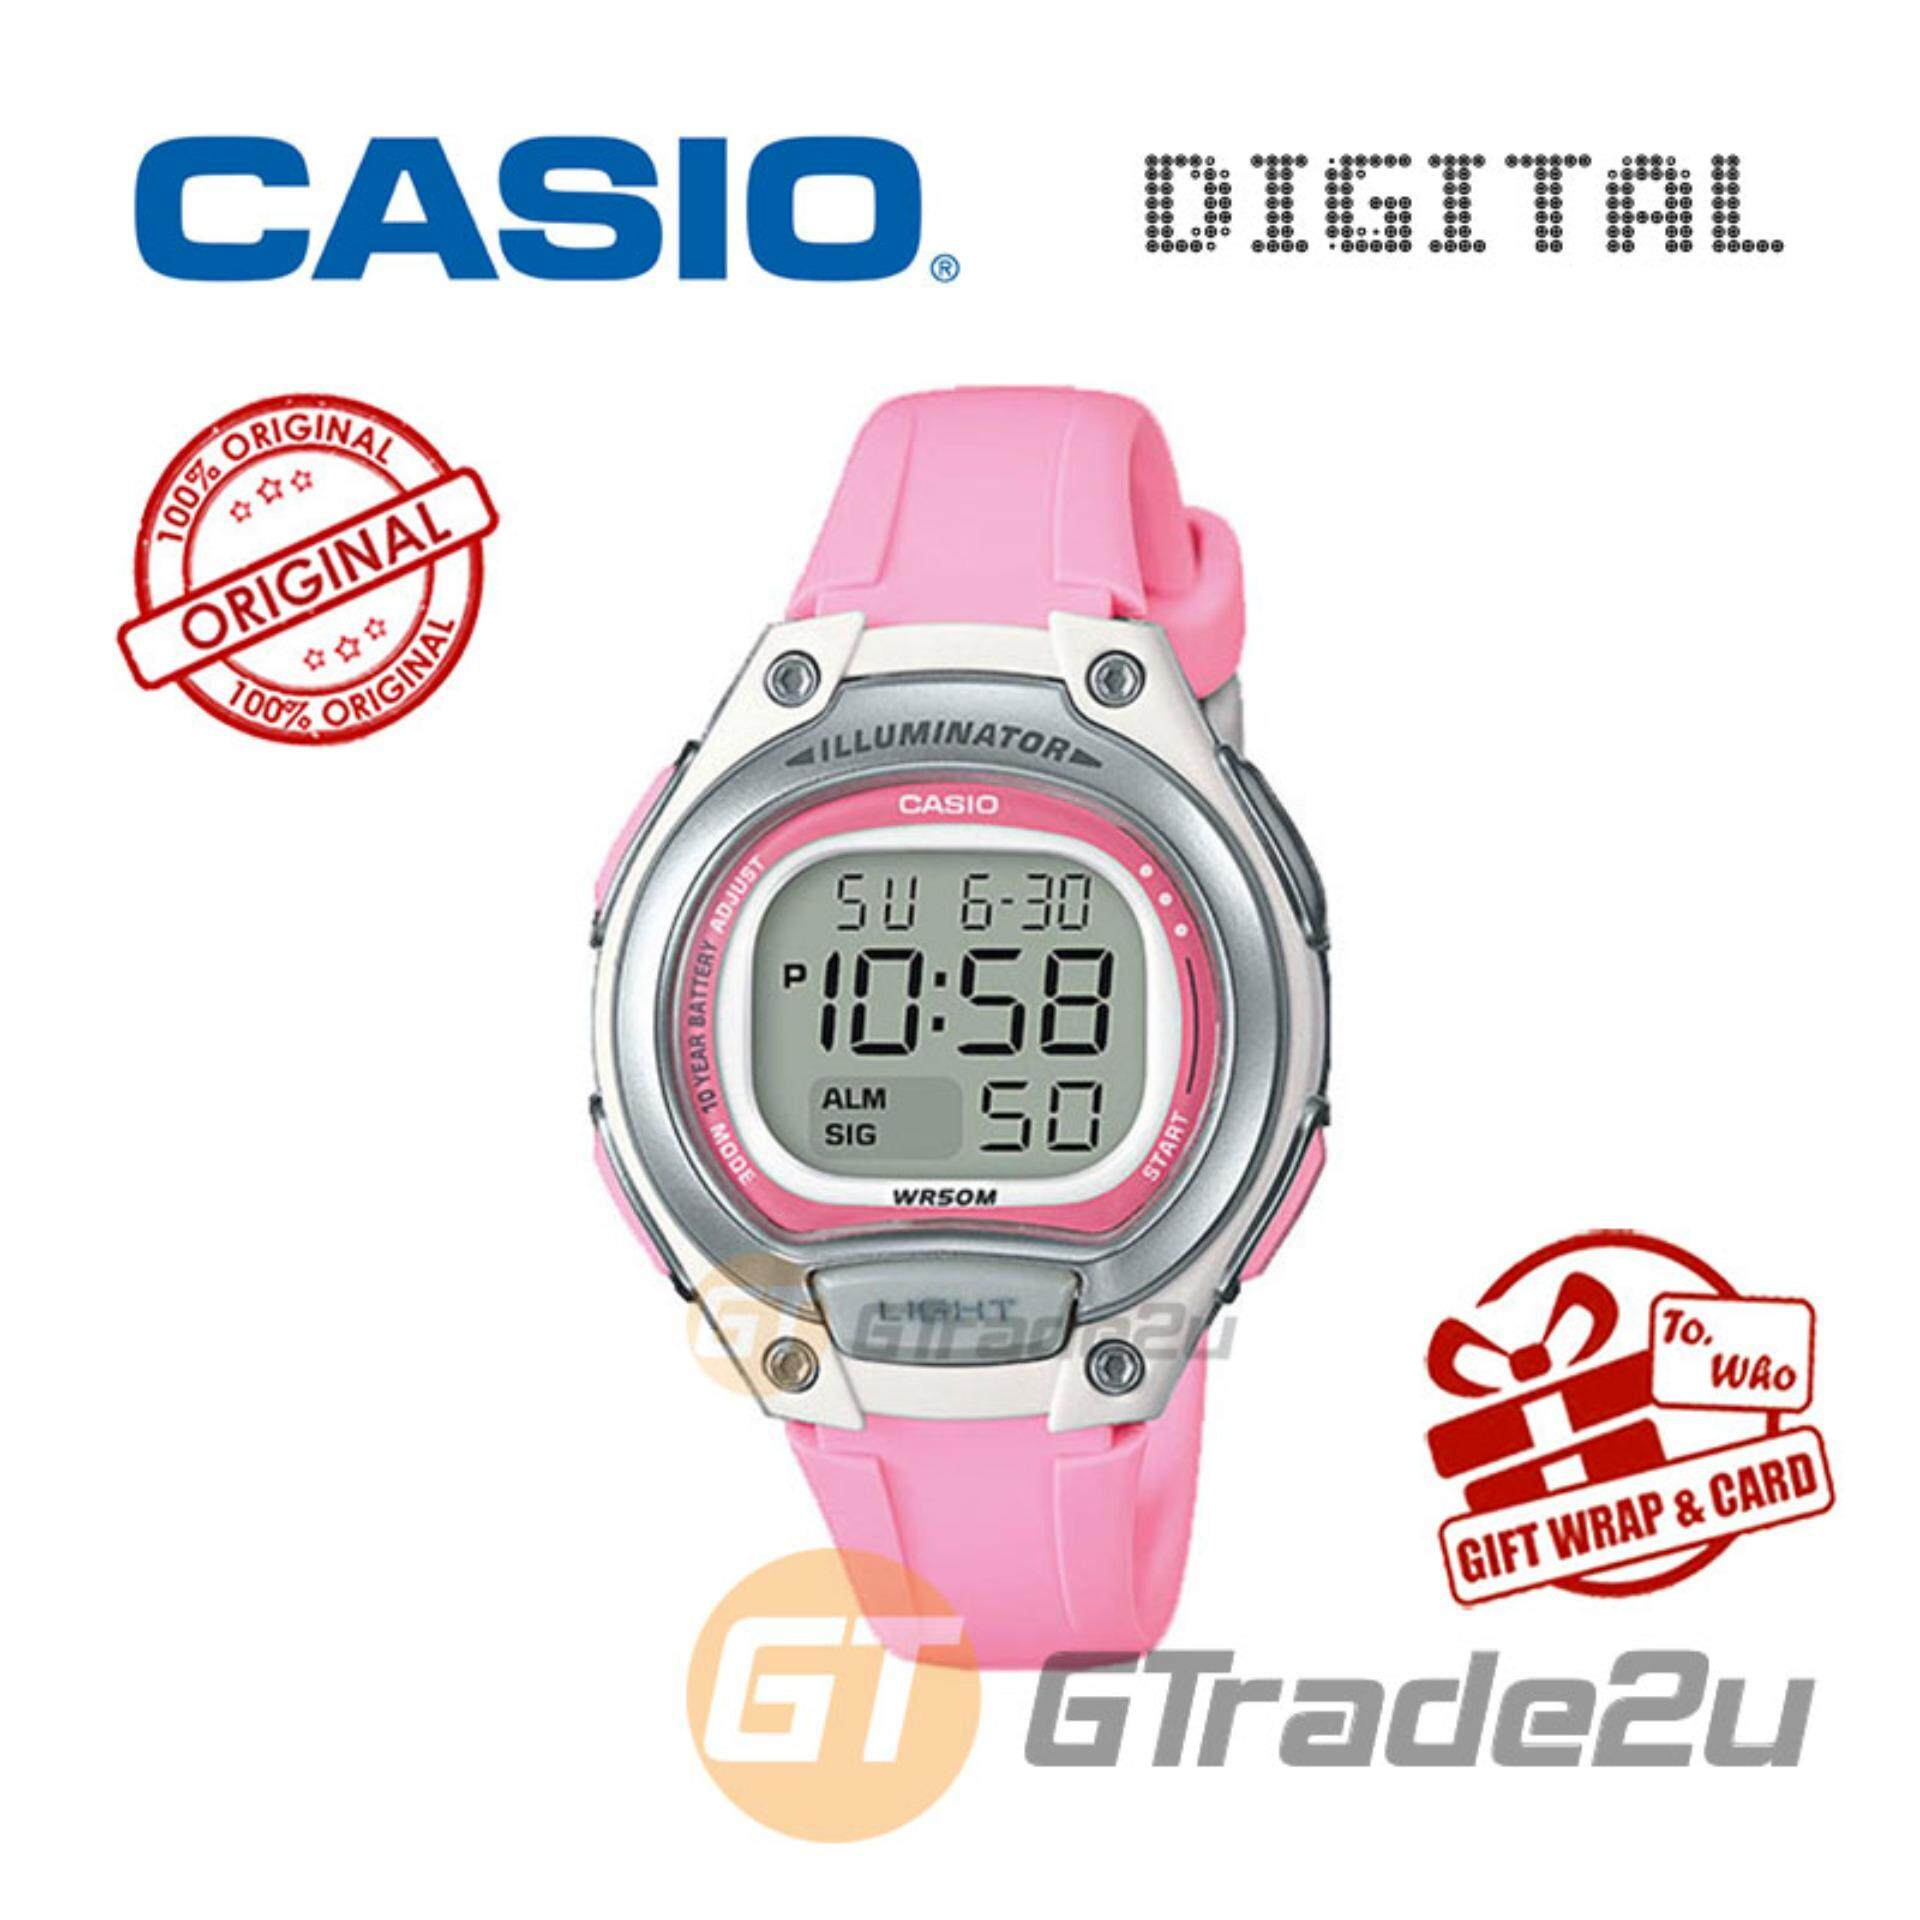 Casio Watches With Best Price At Lazada Malaysia Databank Ca 506 1df Jam Tangan Pria Silver Strap Stainless Steel Kids Ladies Lw 203 4a Digital Watch Cool Futuristic Standout